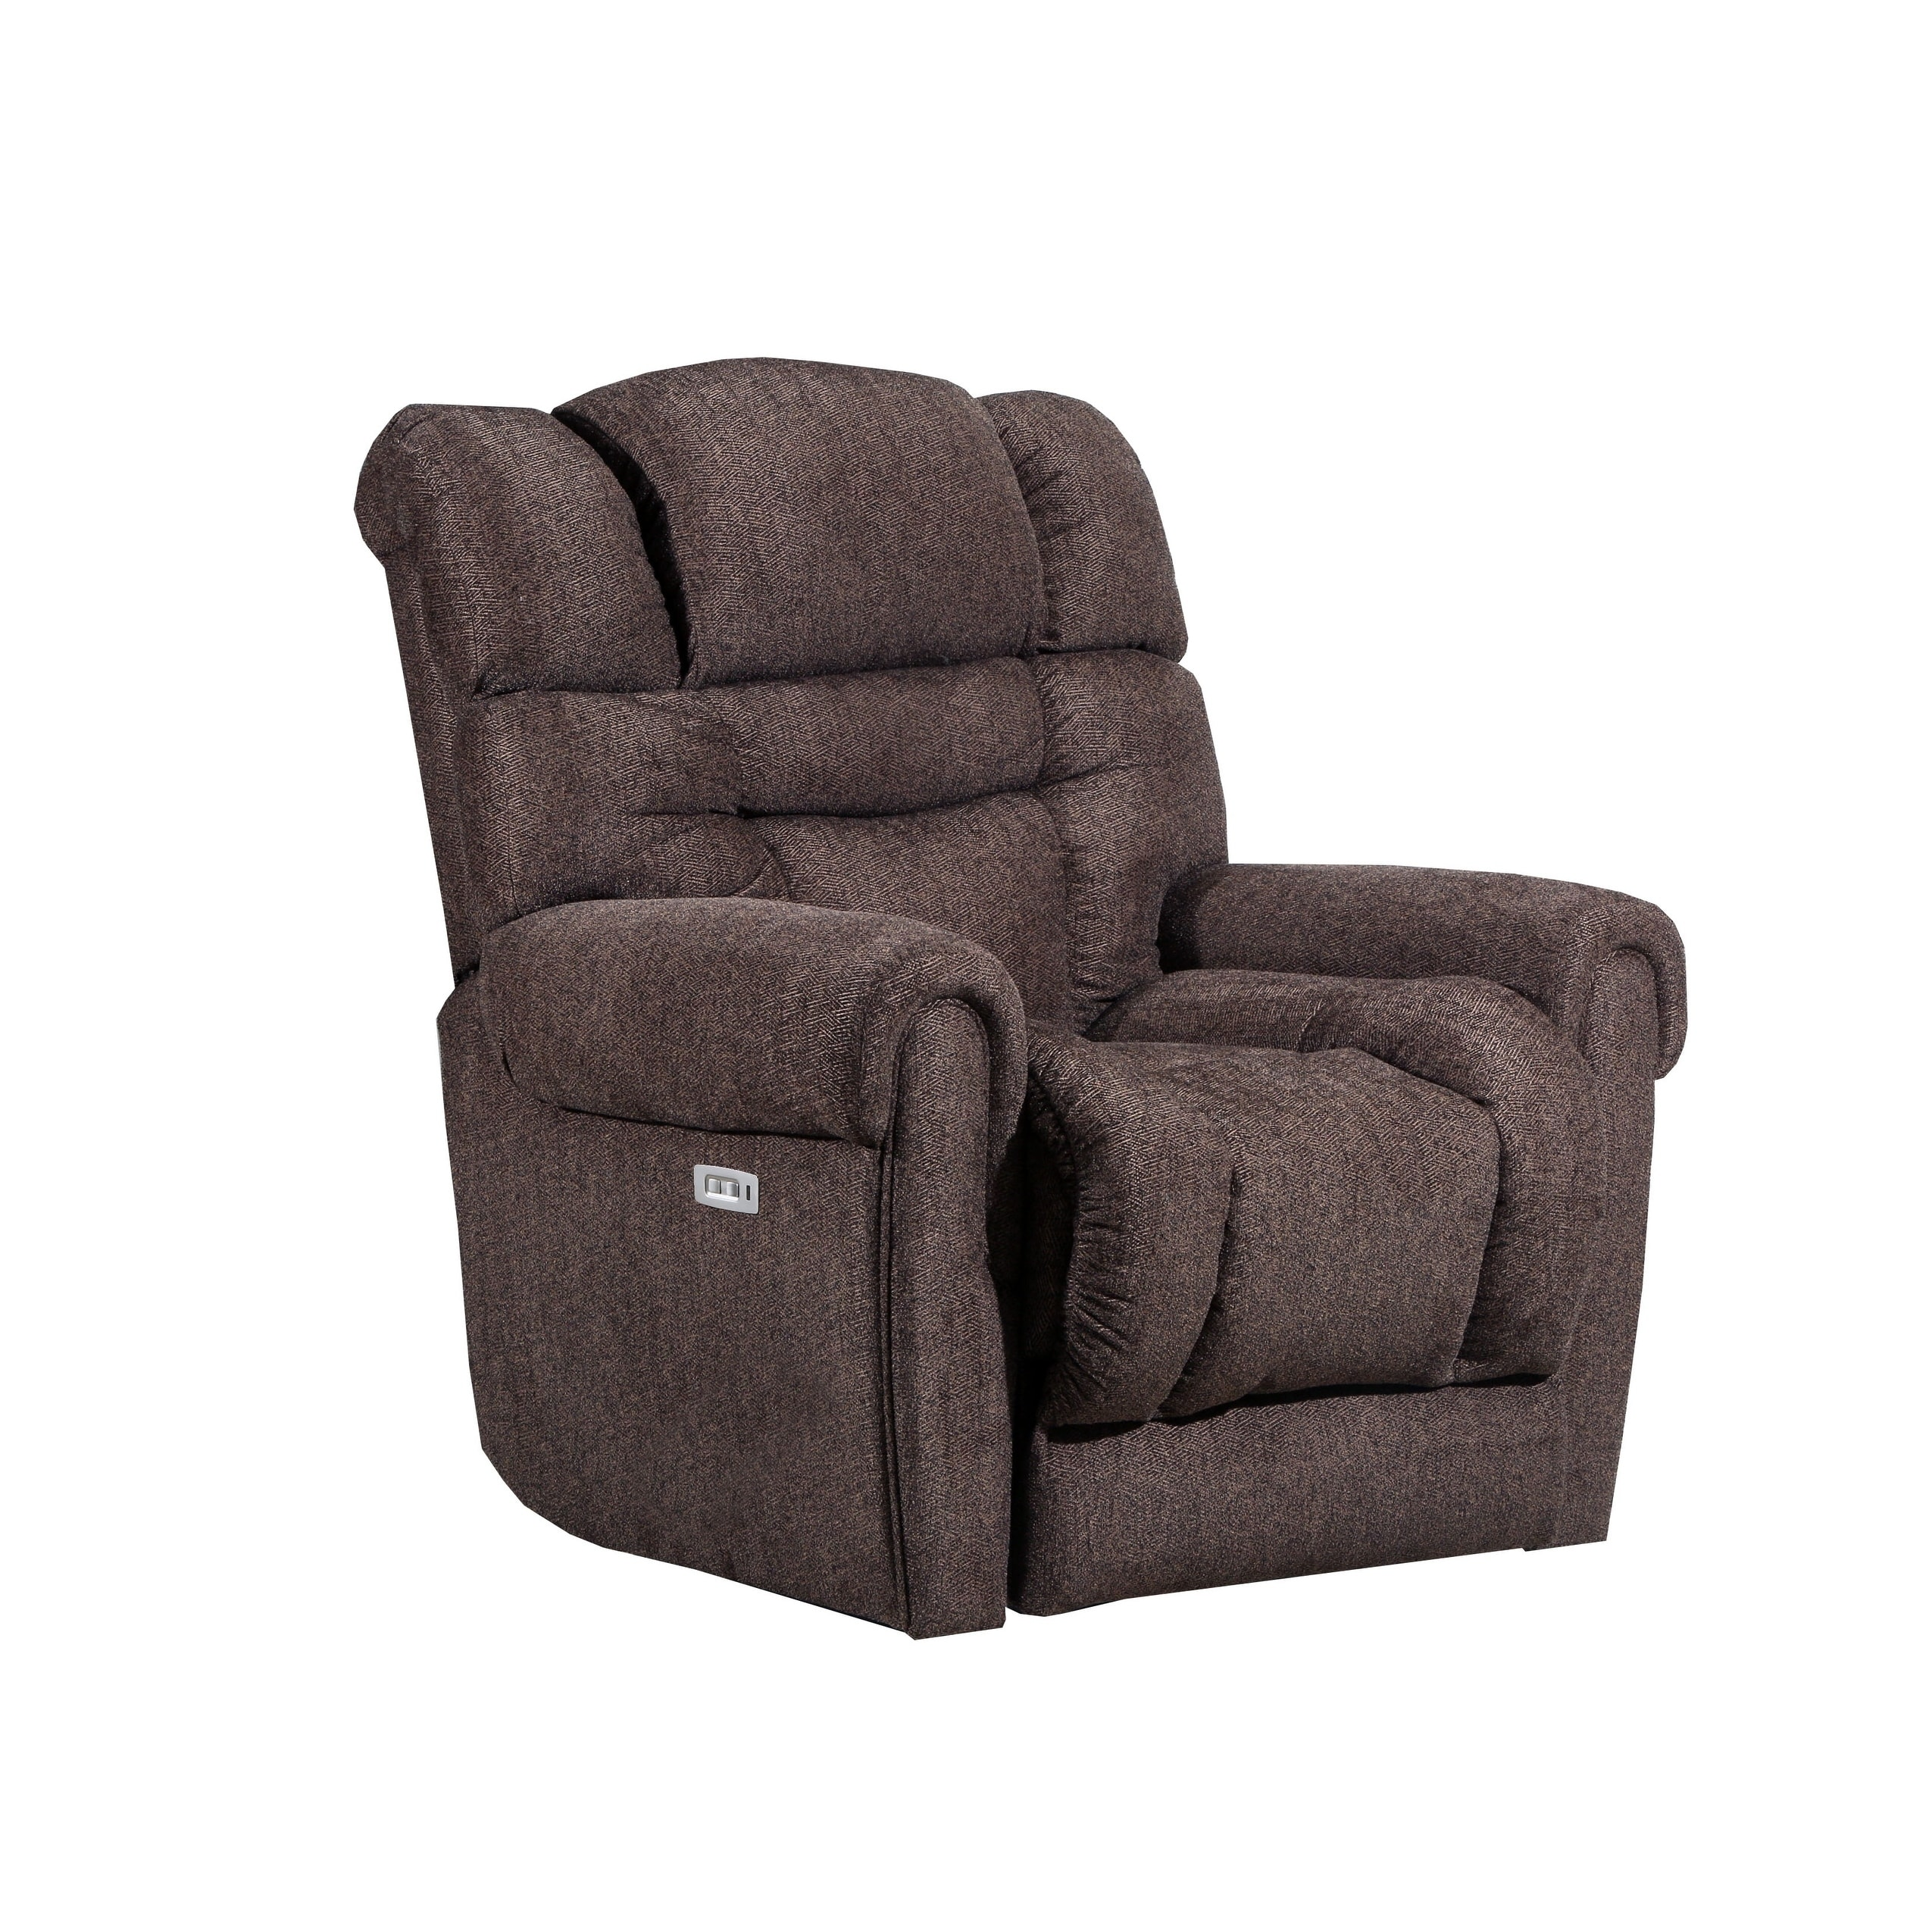 Astonishing Lane Home Furnishings Boston Saddle Power Rocker Recliner Caraccident5 Cool Chair Designs And Ideas Caraccident5Info